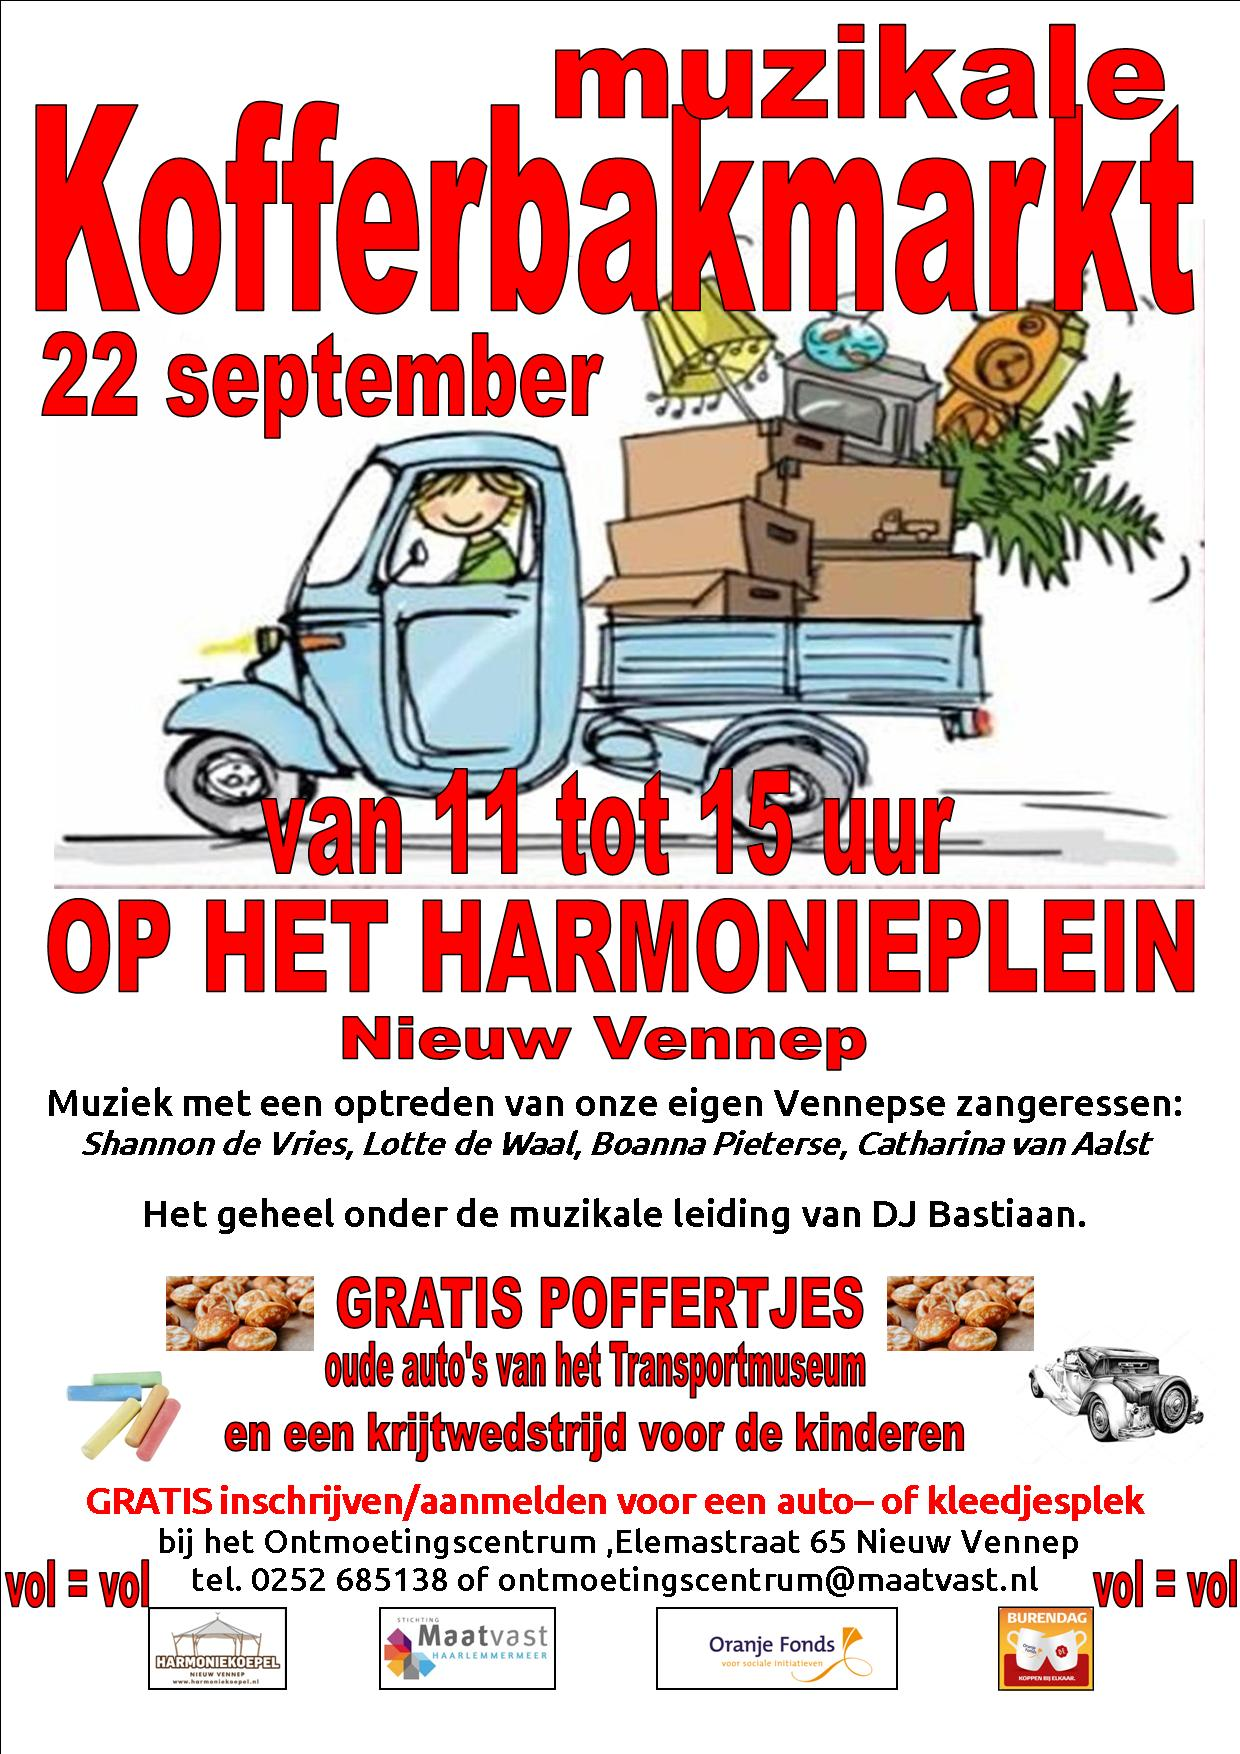 20180922 hk flyer kofferbakmarkt